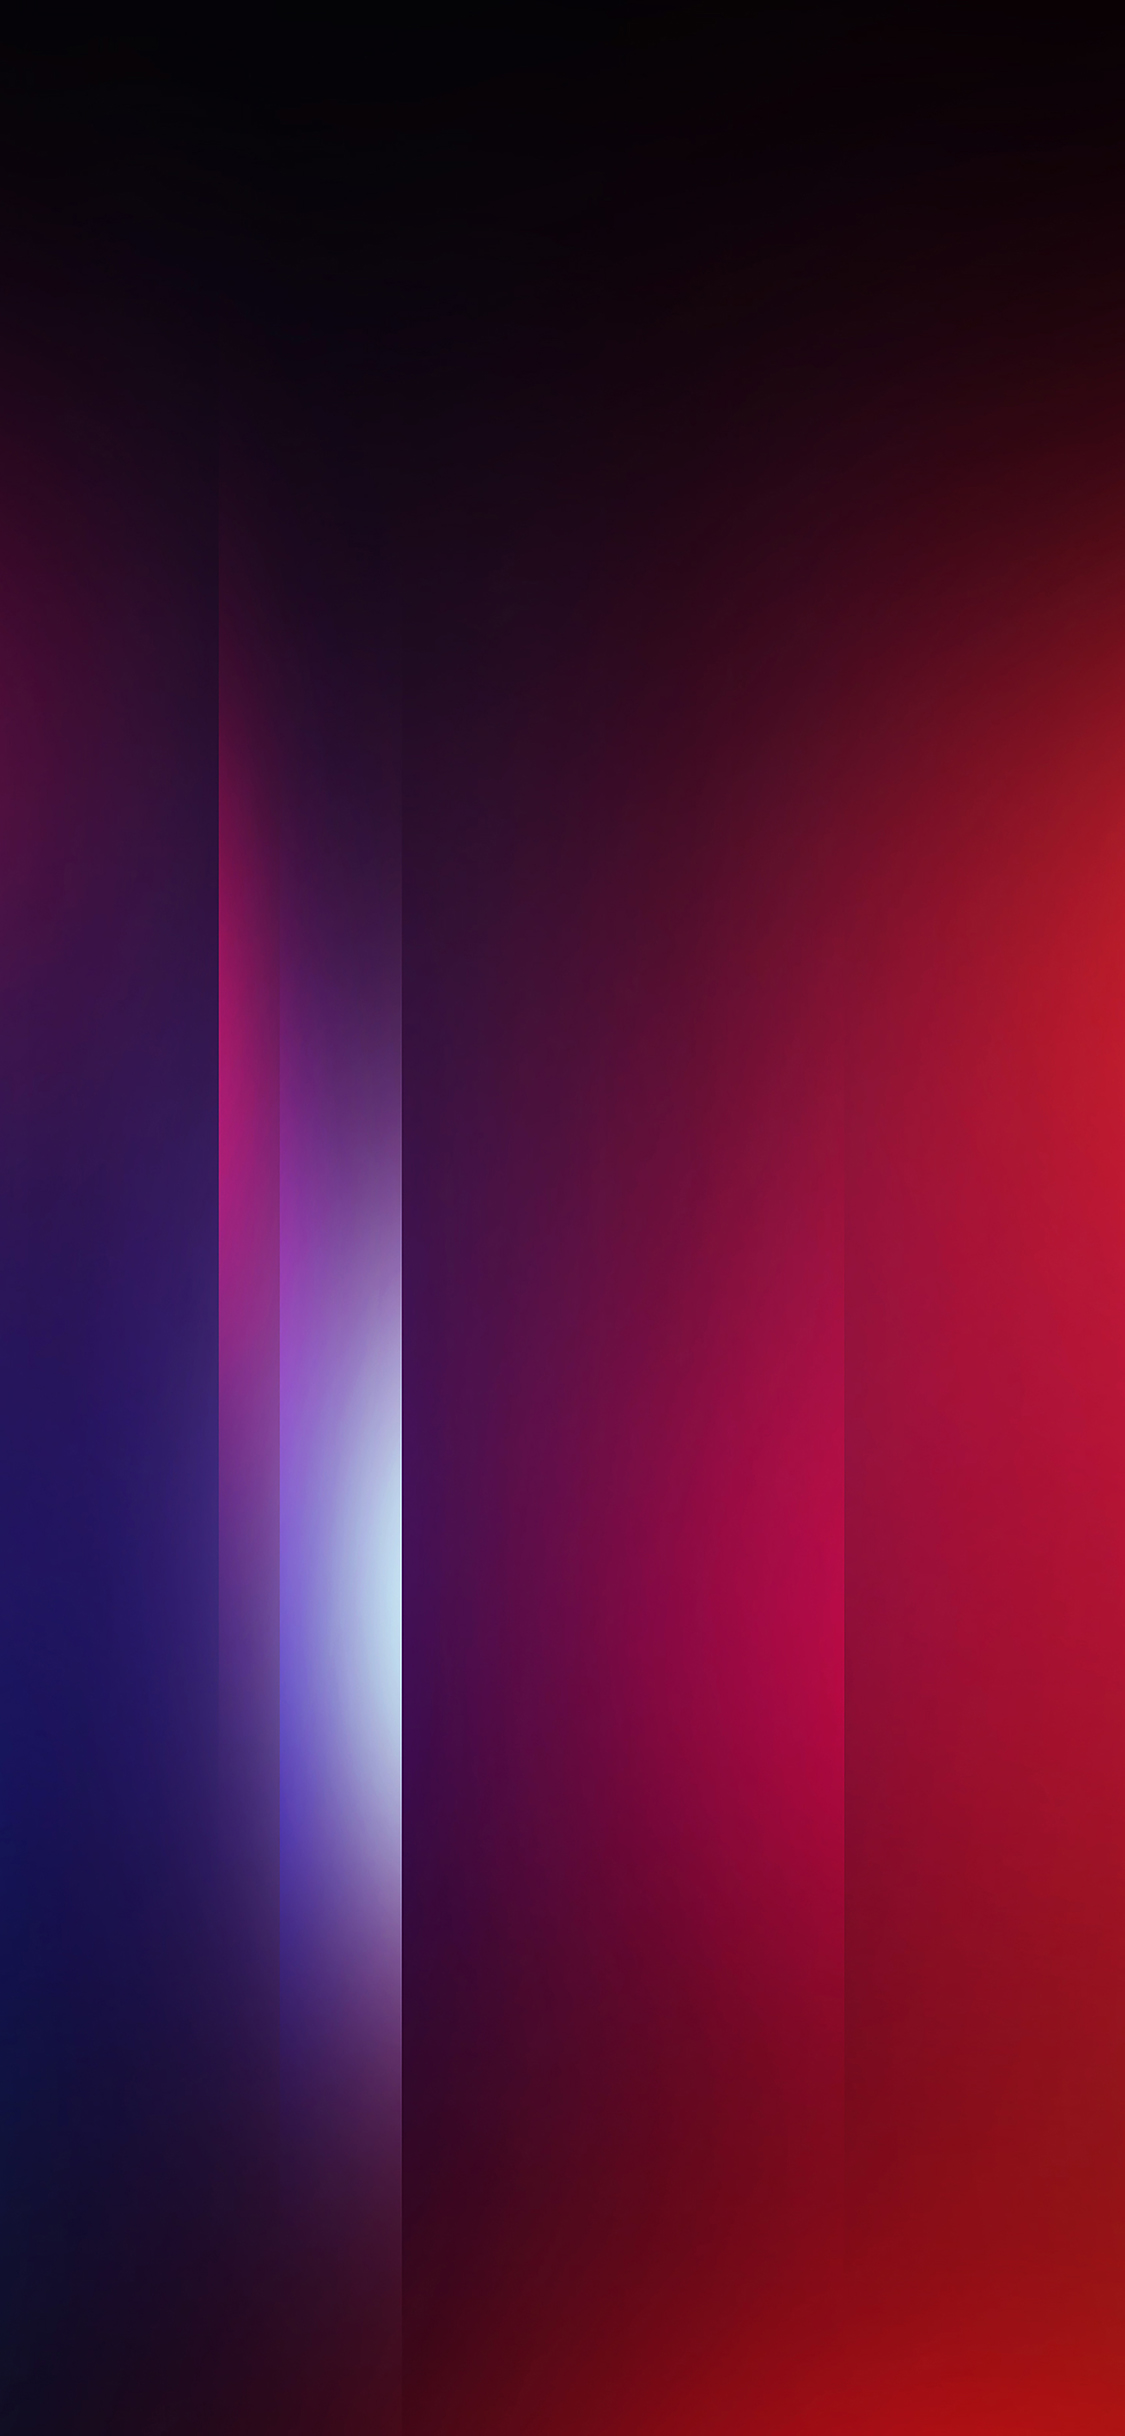 iPhoneXpapers.com-Apple-iPhone-wallpaper-ve62-colorful-vertical-lines-abstract-pattern-art